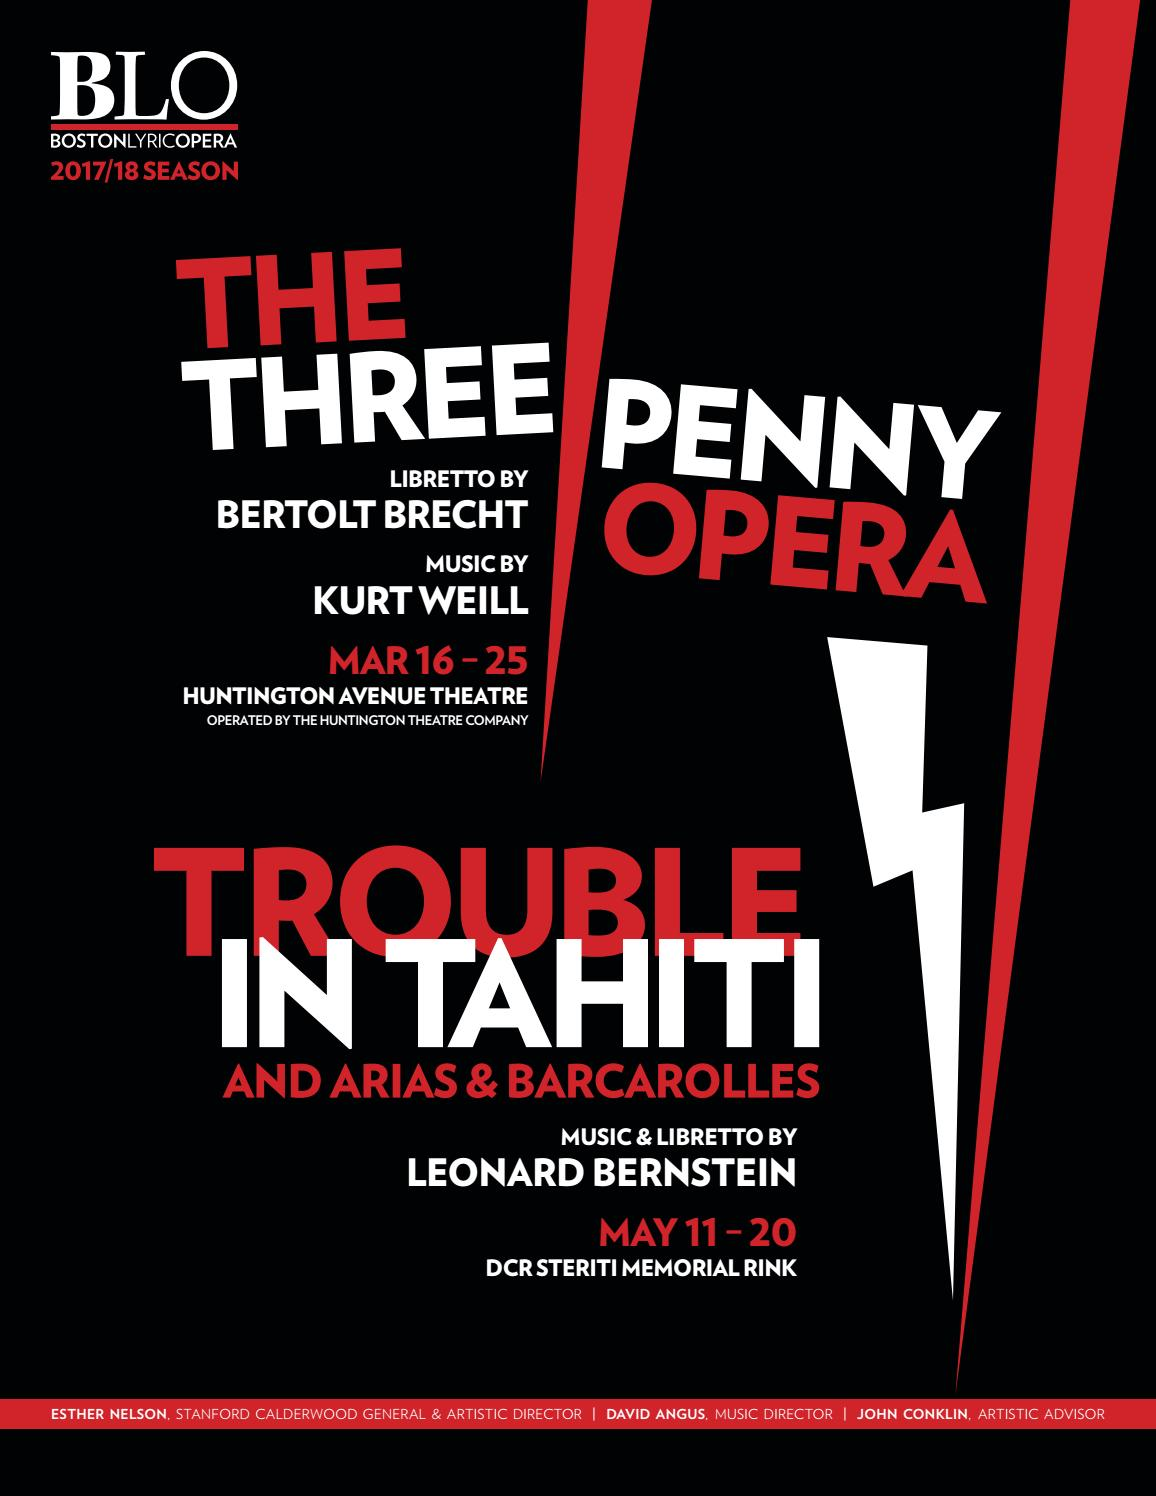 Opera In Park Saturday Night Barcarolle >> Spring 2018 Program Book The Threepenny Opera And Trouble In